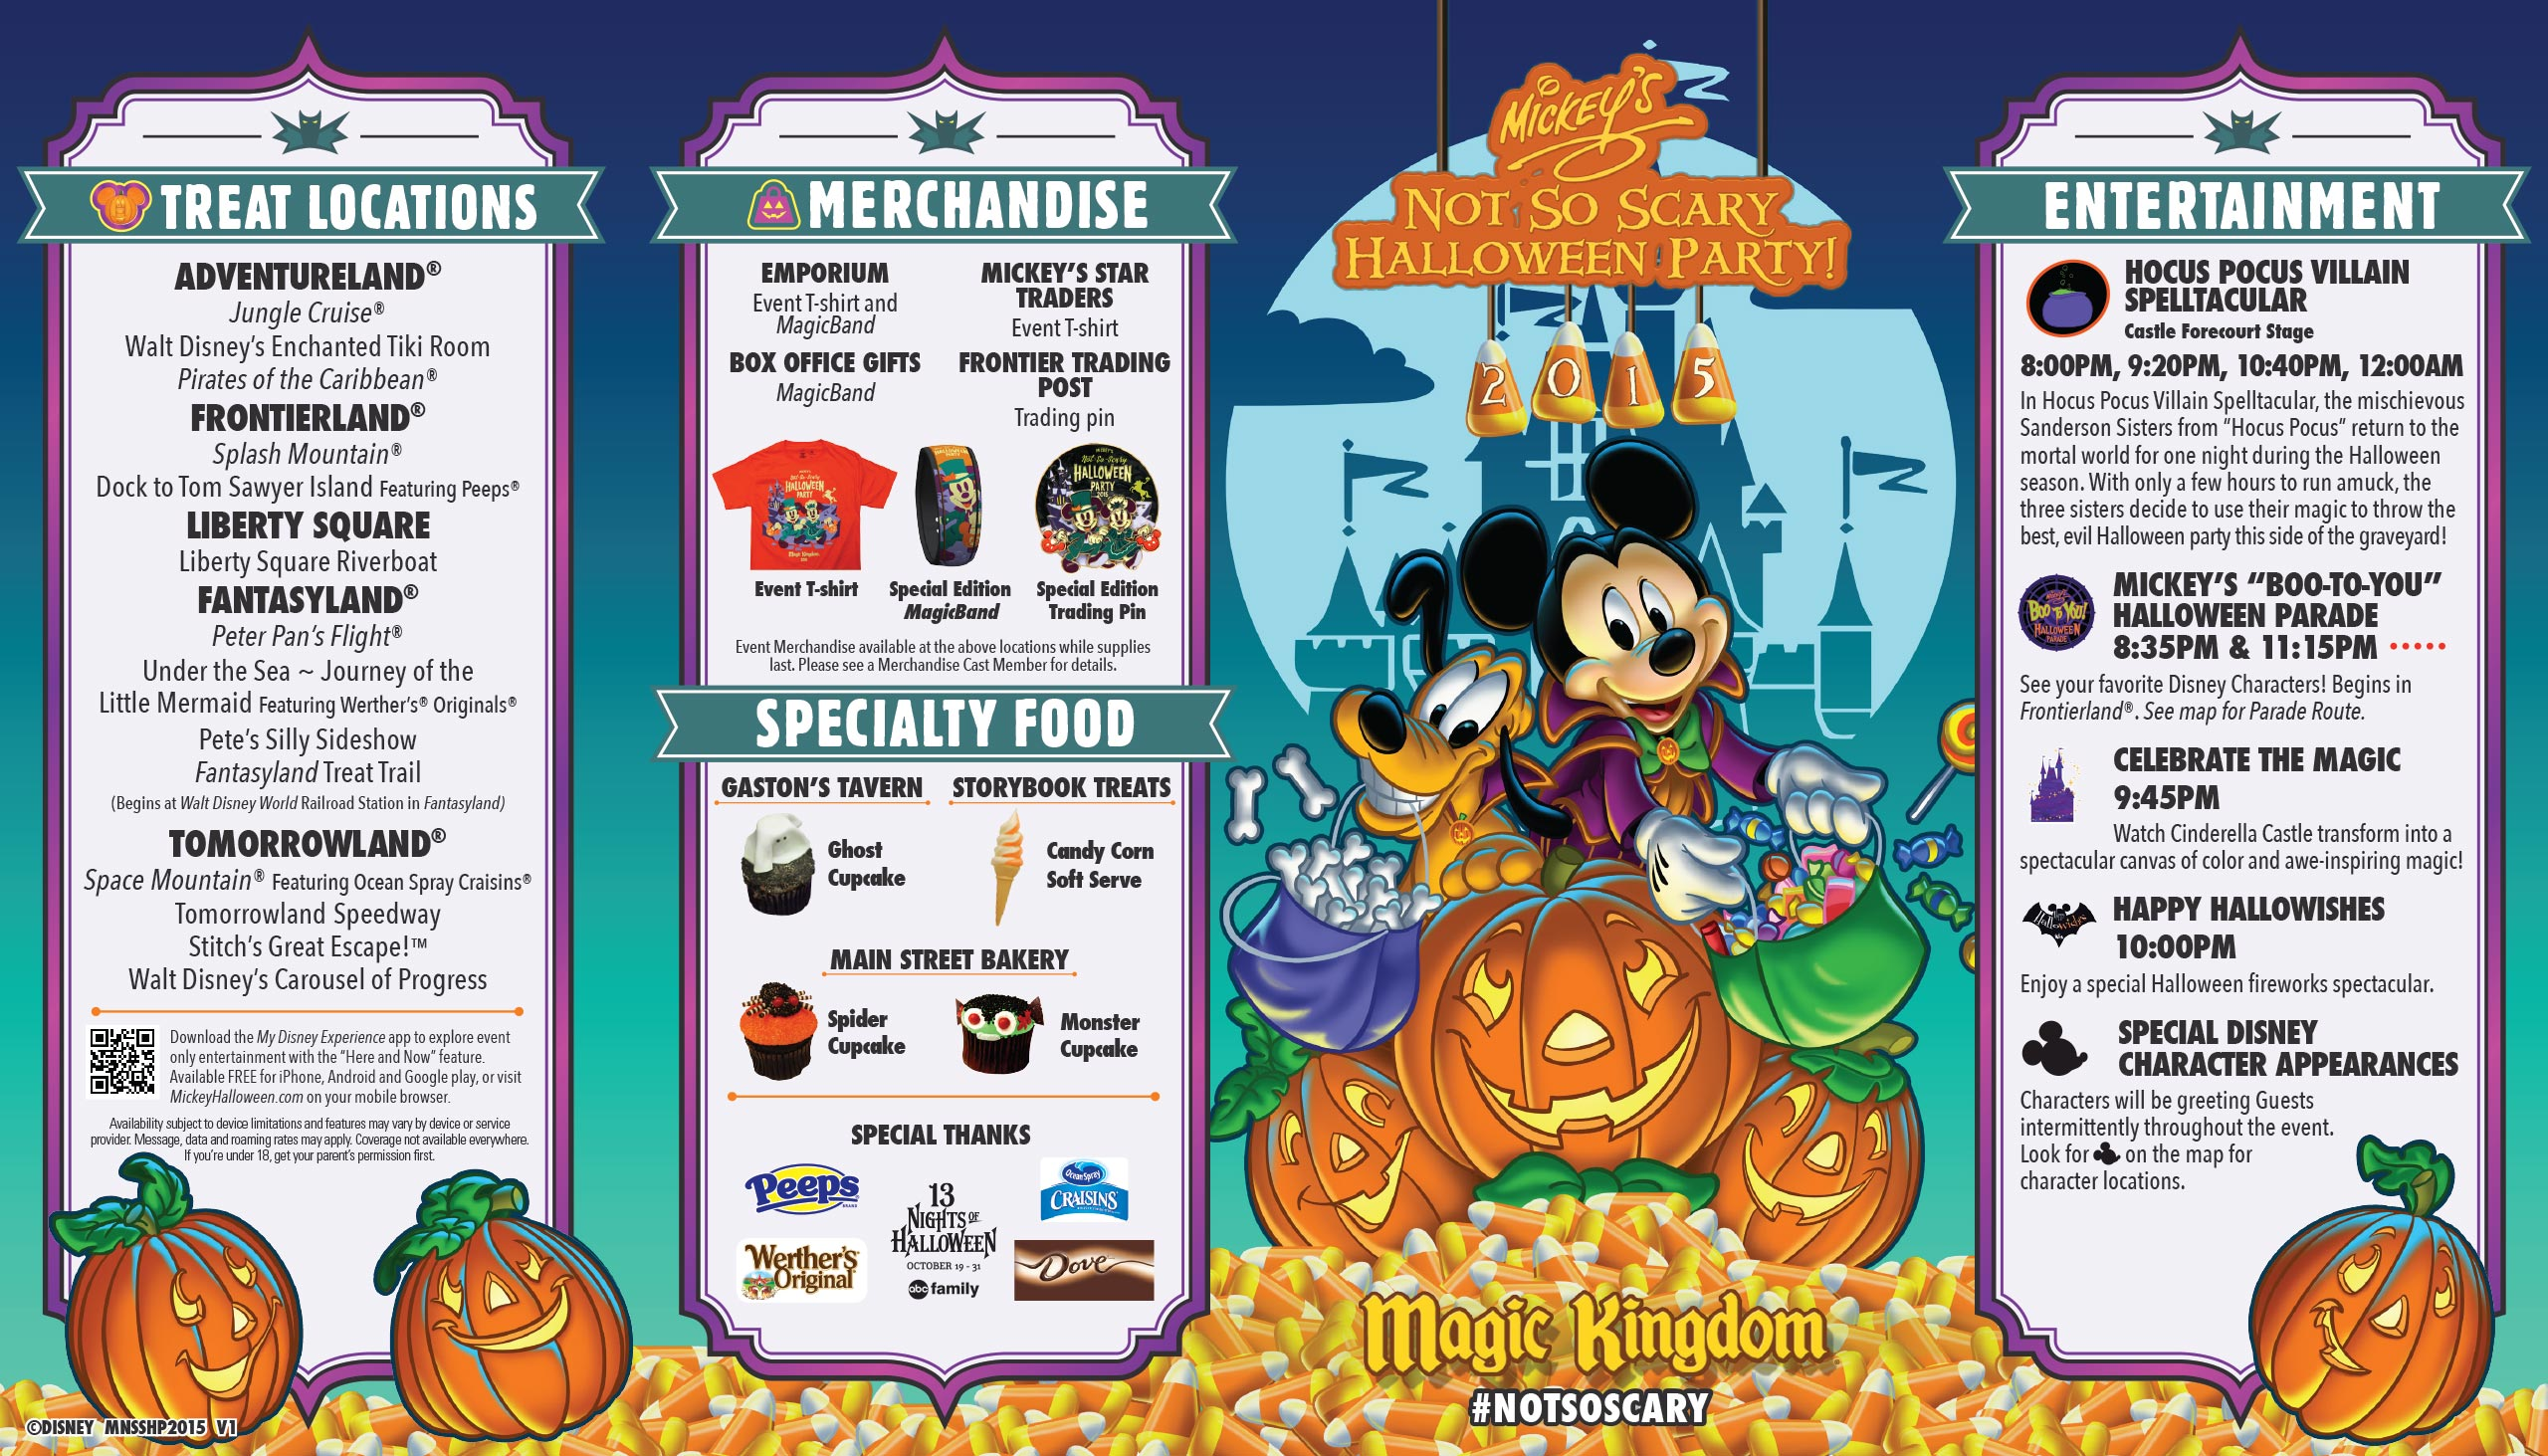 mickeys not so scary halloween party guide map 2015 front